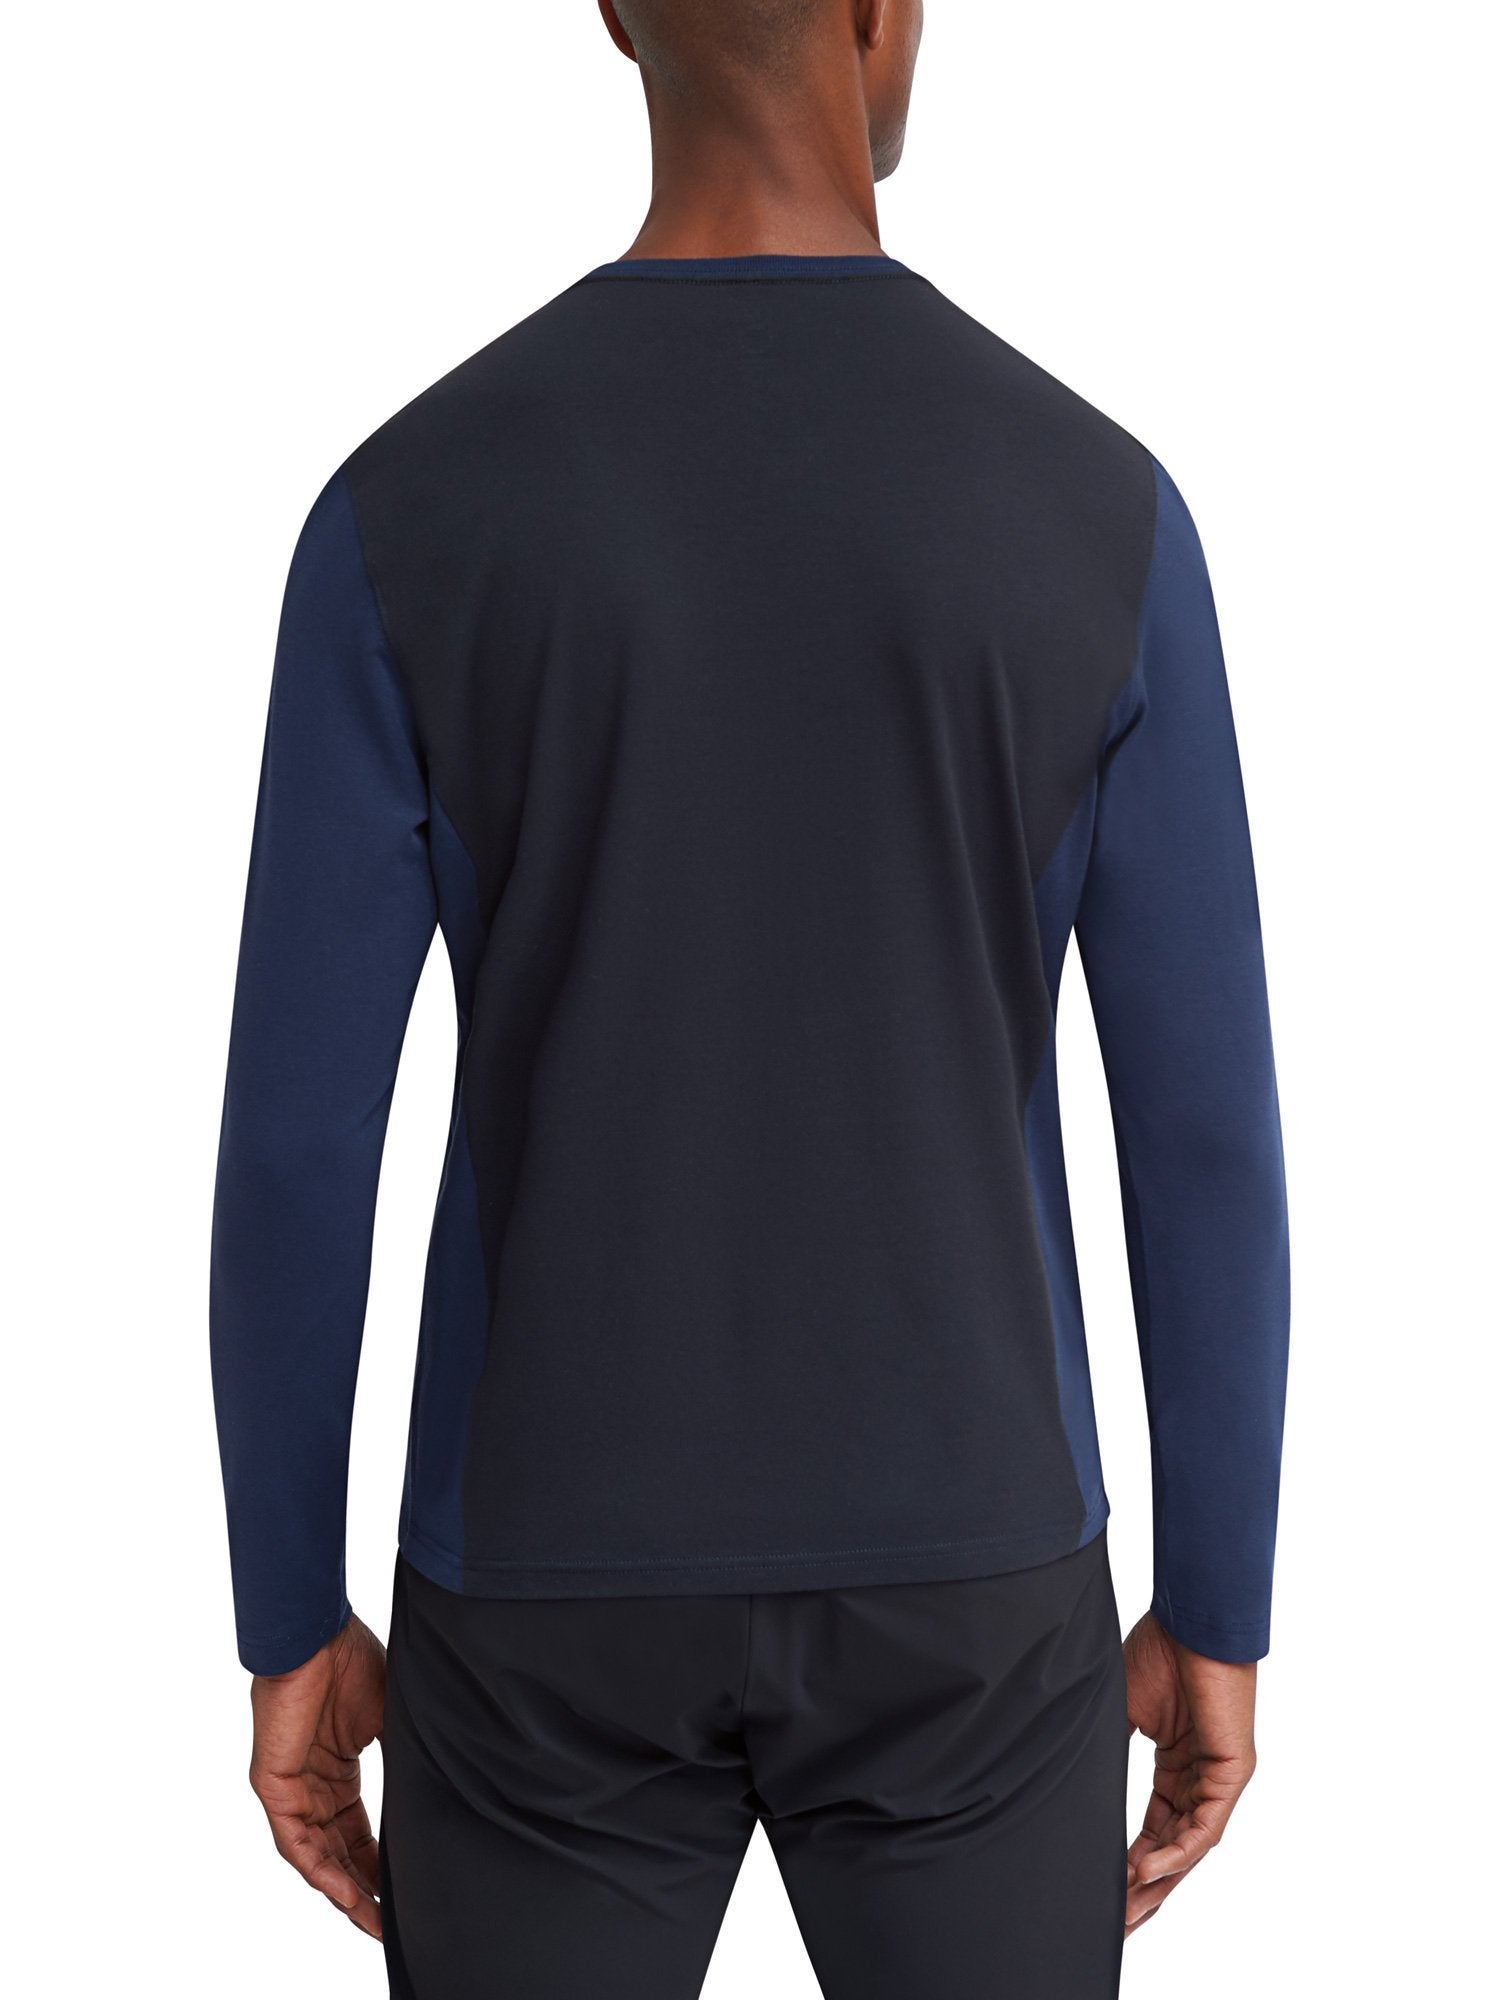 Trekker L/S V-Neck Color Block T-Shirt - Navy - EFM Menswear Engineered For Motion